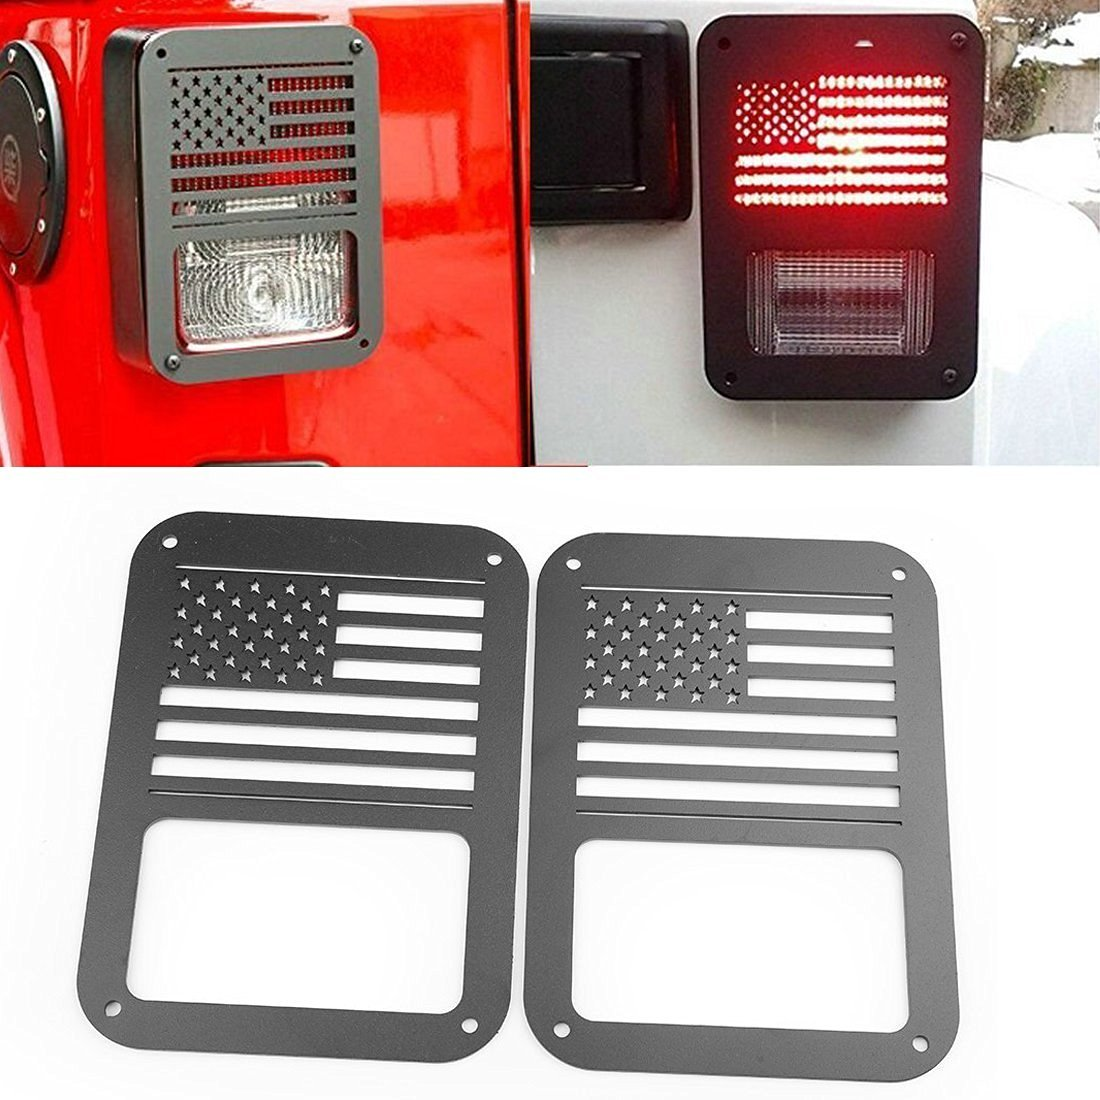 Black Star Yoursme Tail Lamp Guard Black Taillight Rear Light Trim Cover Protector for 2007 2008 2009 2010 2011 2012 2013 2014 2015 2016 2017 Jeep Wrangler Accessories JK Unlimited Pair